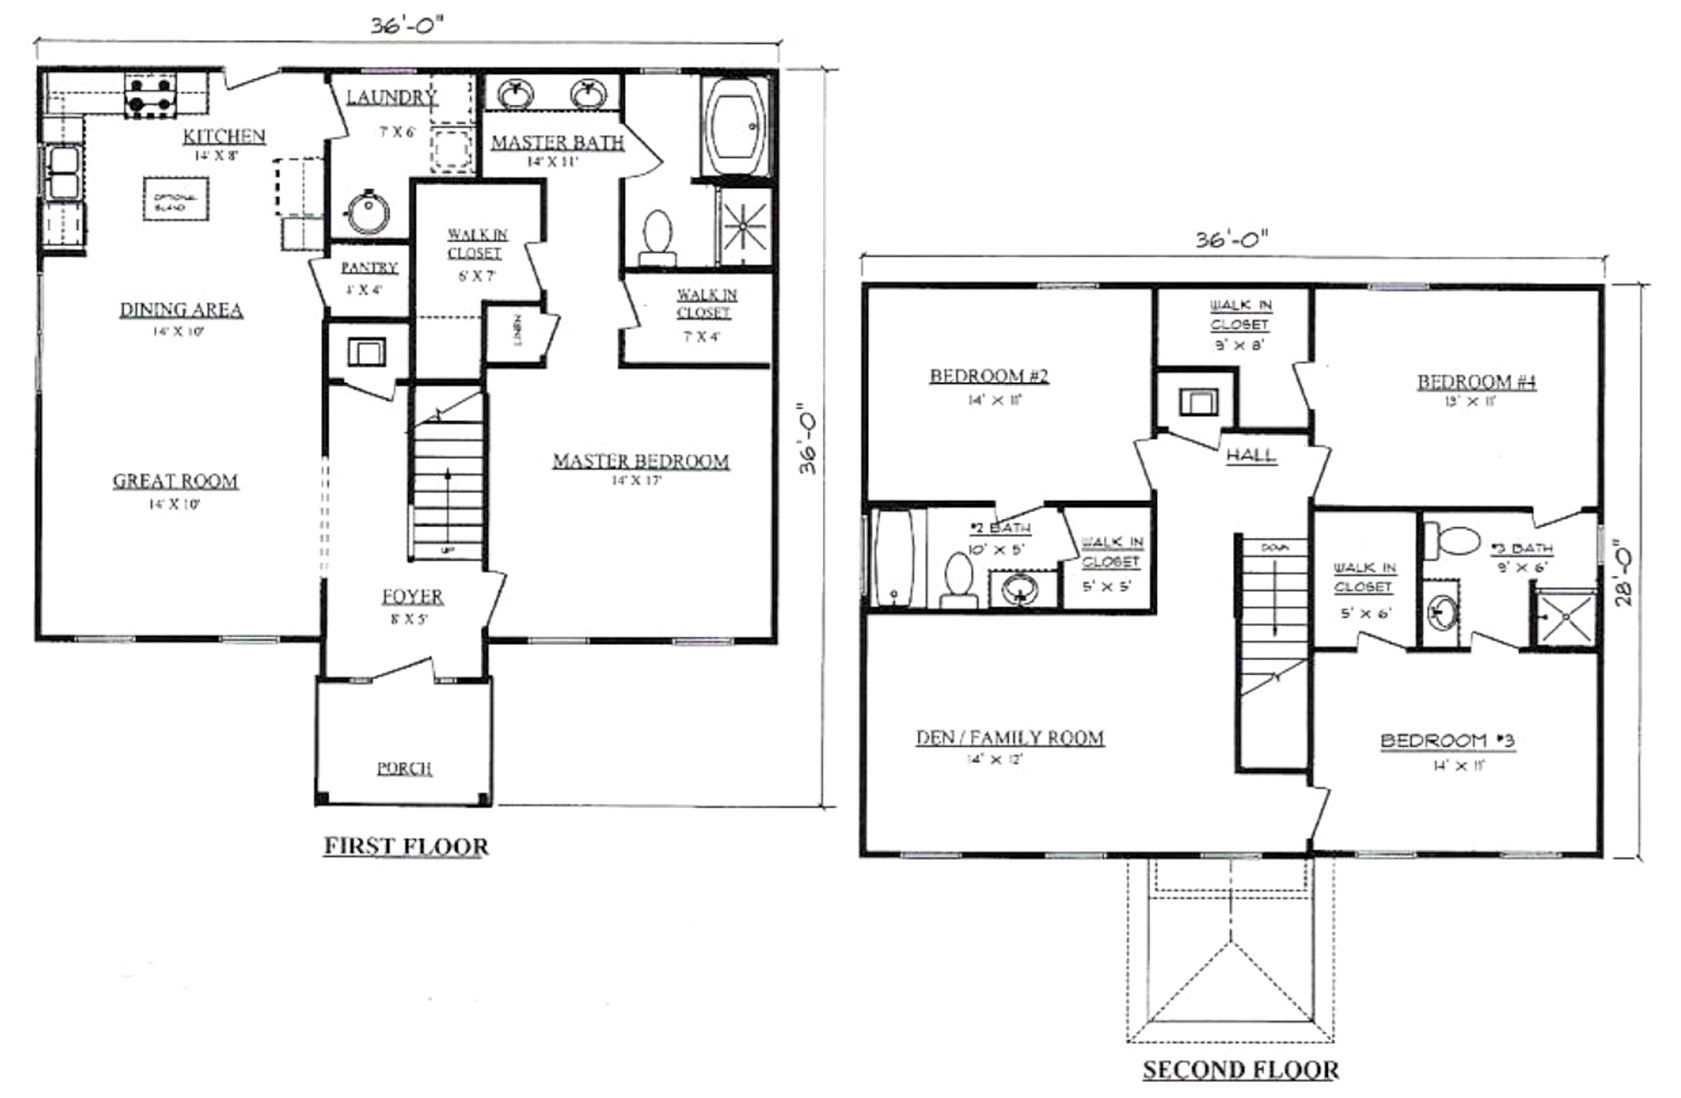 Plans for Manchester Pennyworth Homes Tallahassee Home Builder